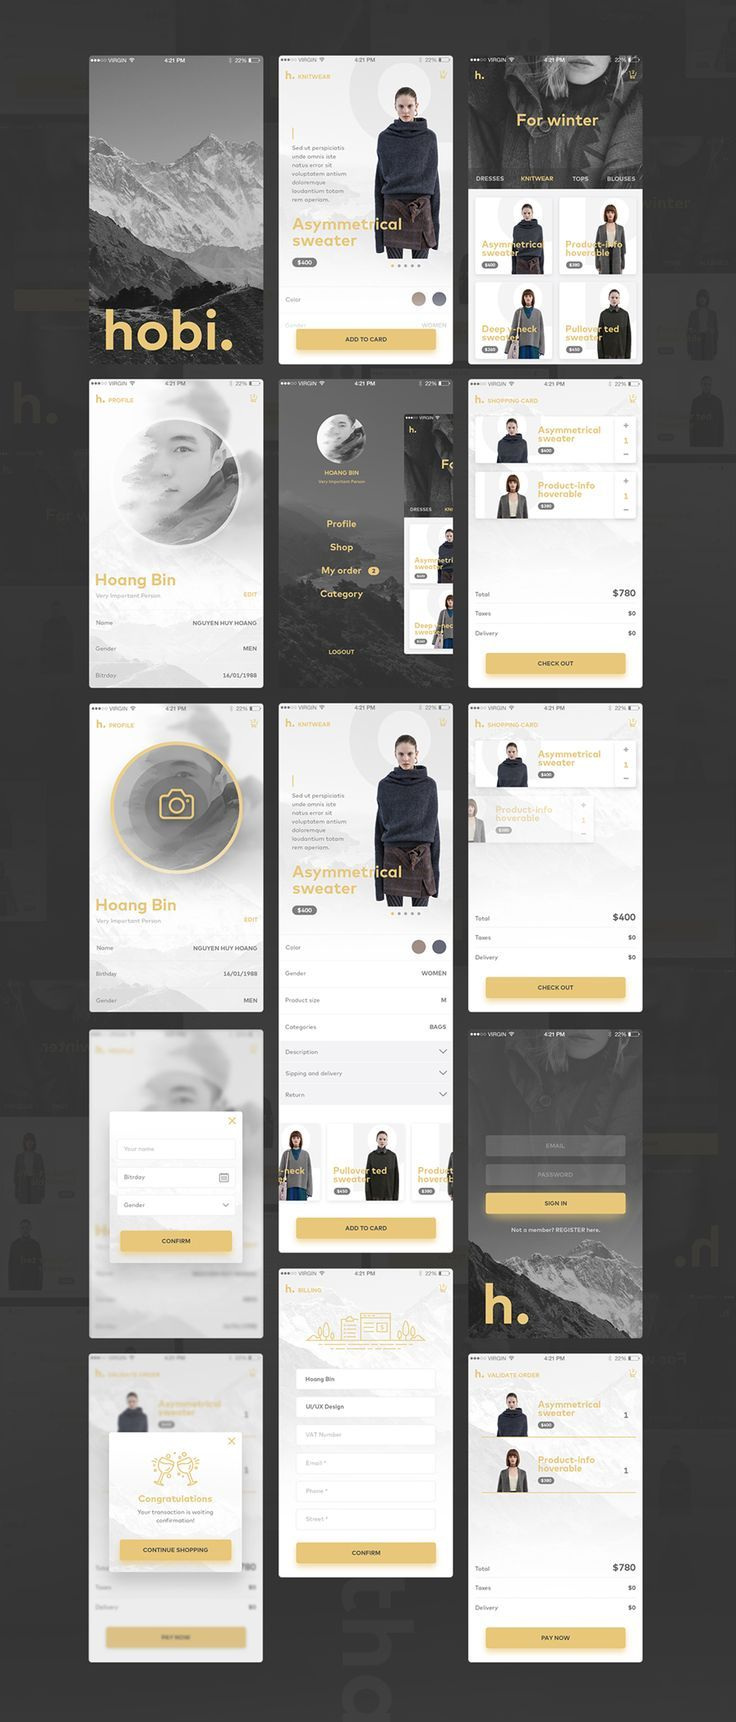 Hobi - Free UI PSD Mobile App. If you like UX, design, or design thinking, check out theuxblog.com